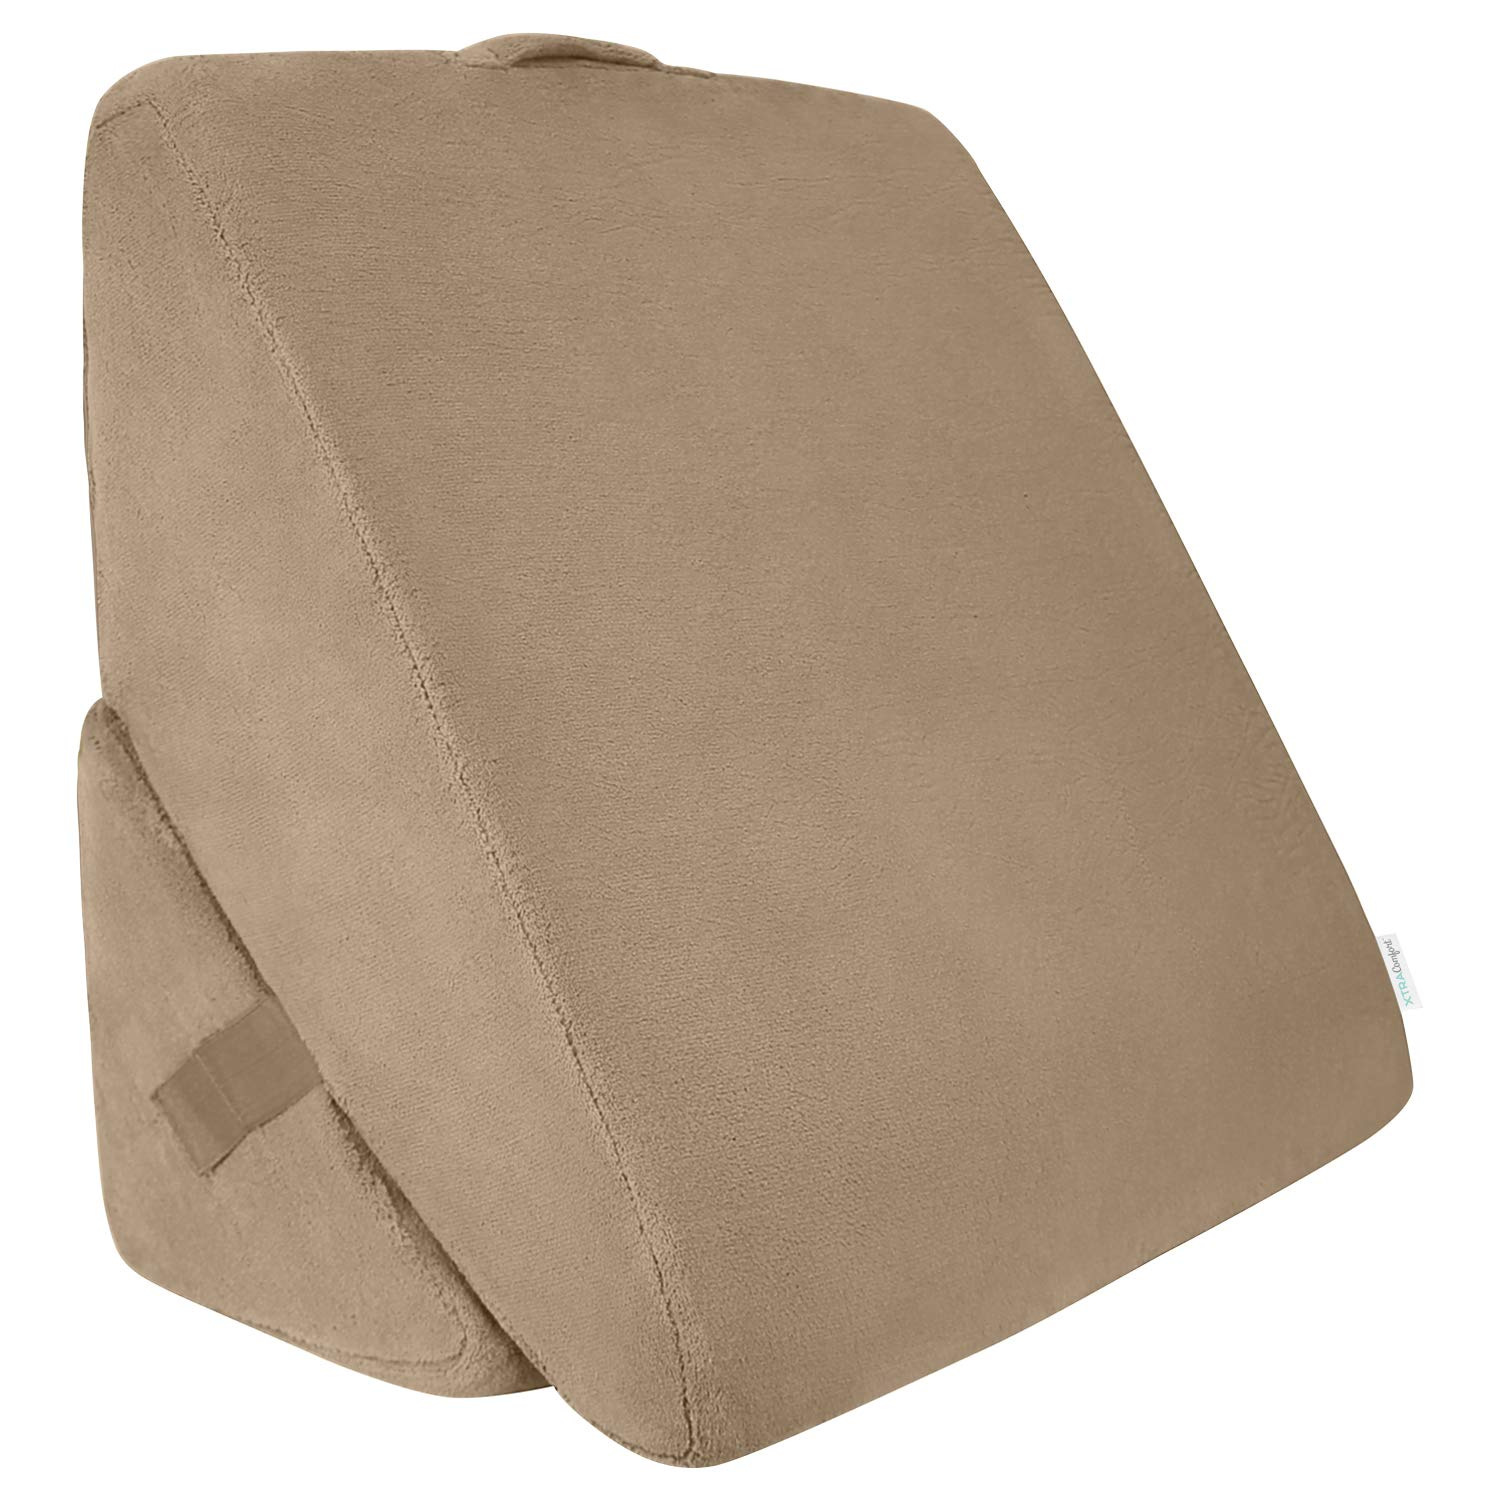 Xtra-Comfort Bed Wedge Pillow Image